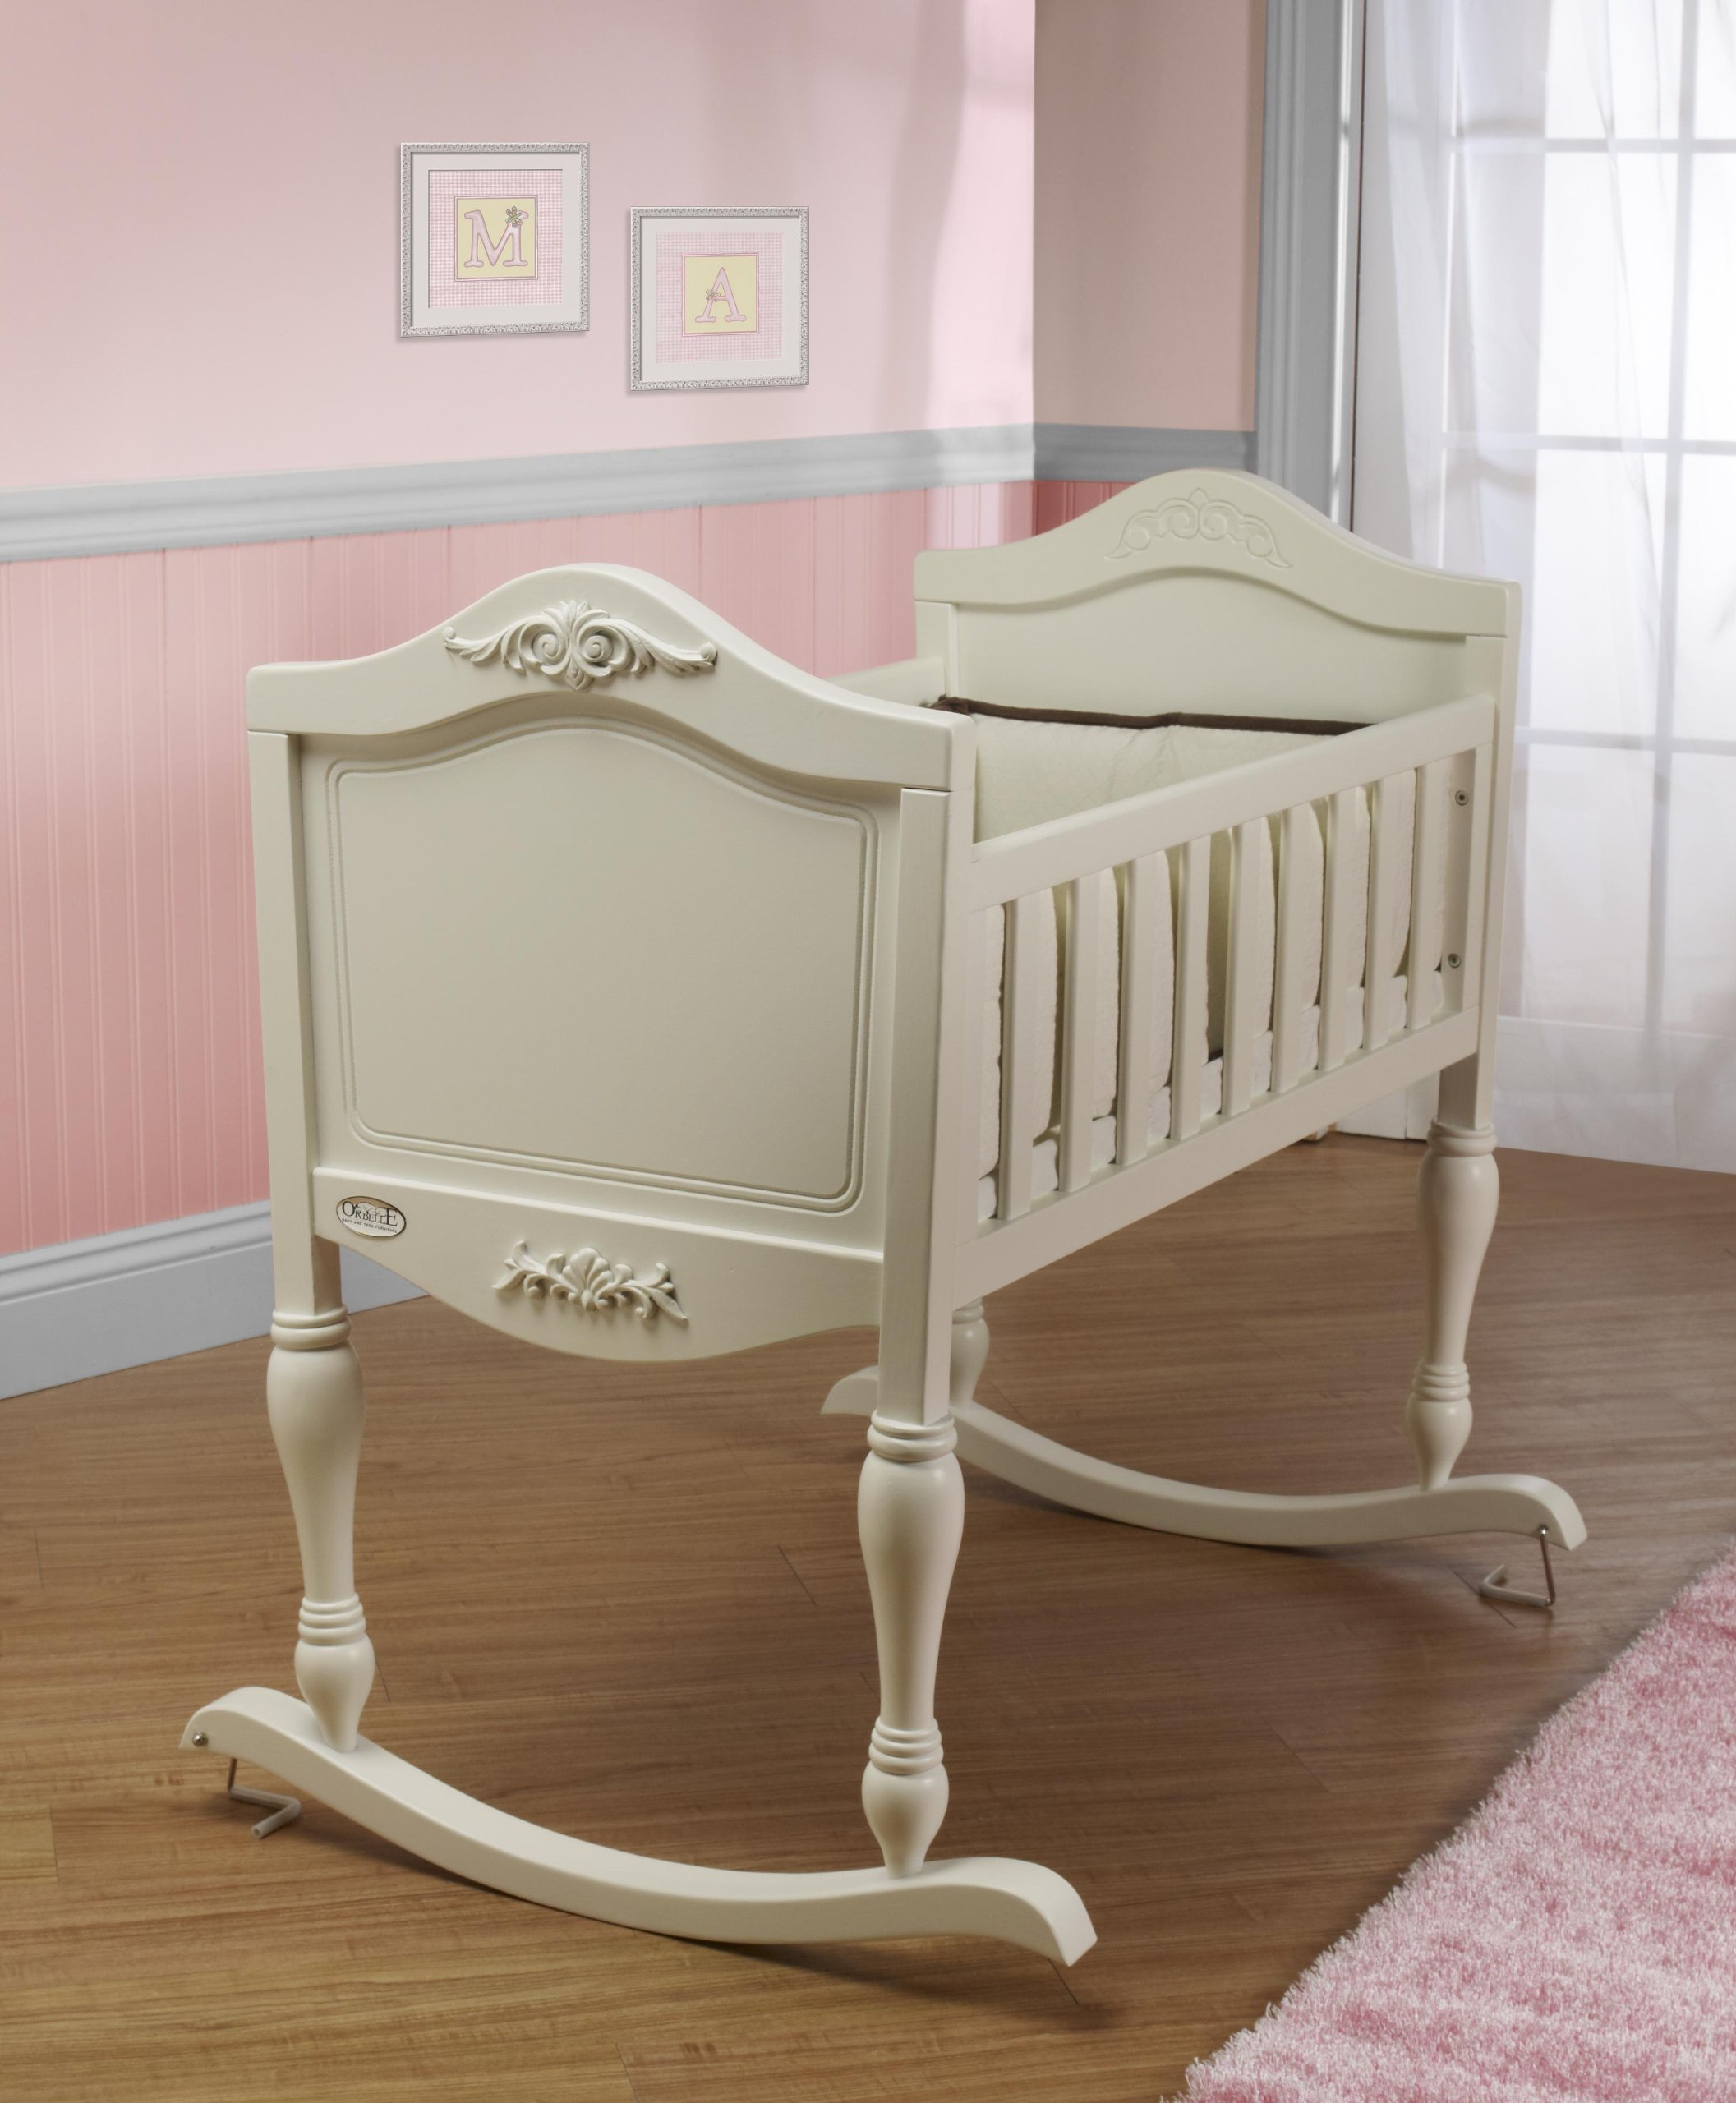 Orbelle Trading Ga Ga Cradle, French White by Orbelle Trading